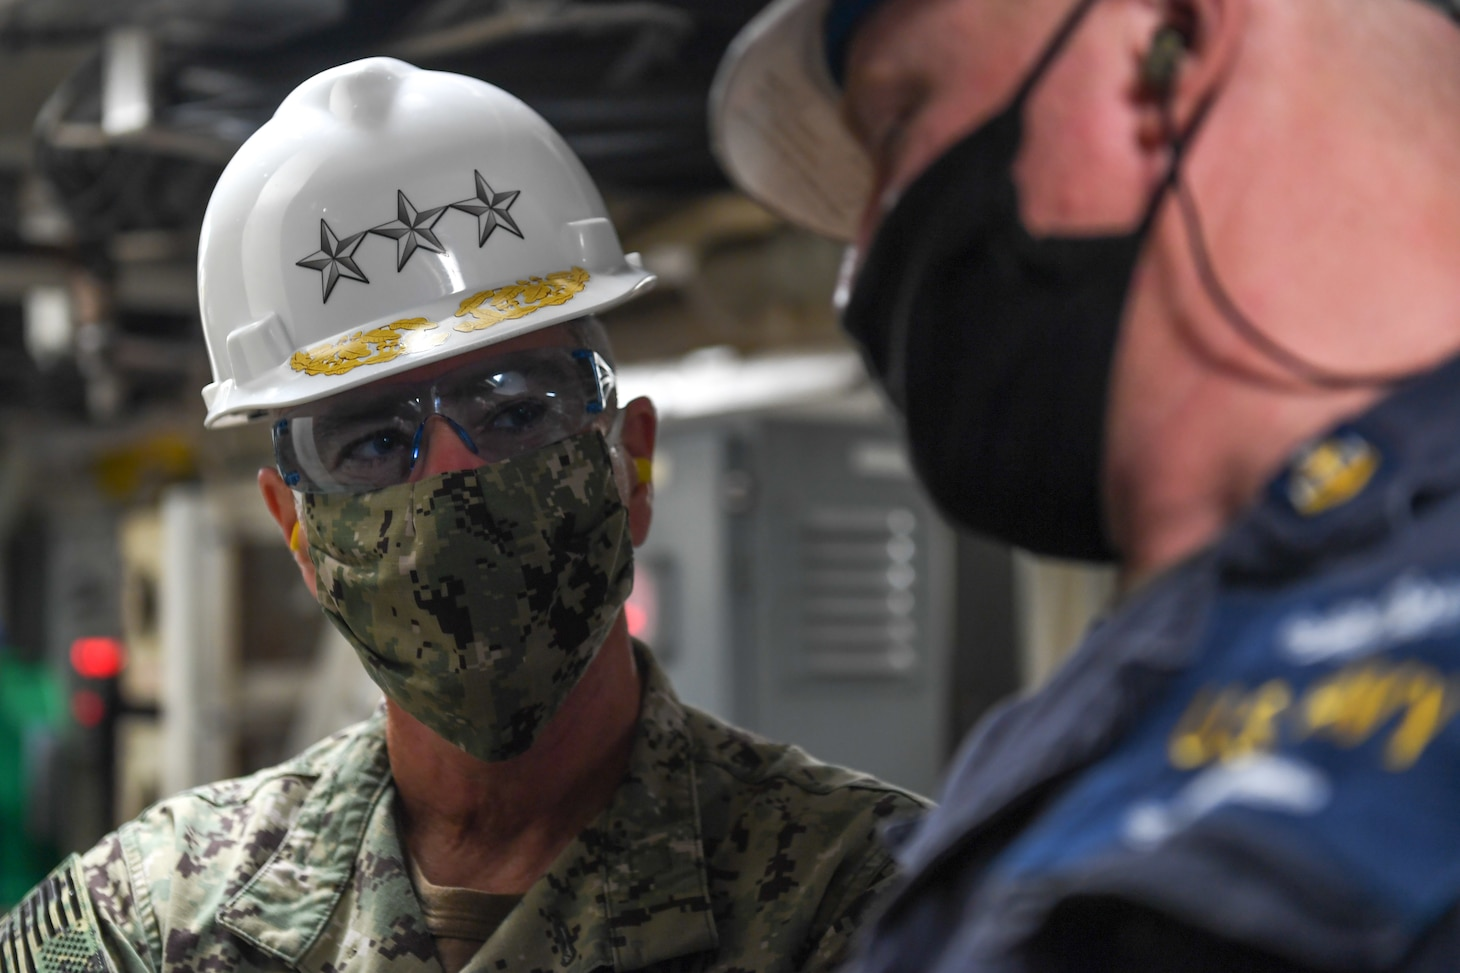 Vice Adm. Roy Kitchener, Commander, Naval Surface Force U.S. Pacific Fleet, tours the engine spaces of the dock landing ship USS Rushmore (LSD 47), with Senior Chief Engineman Jason Saffa.